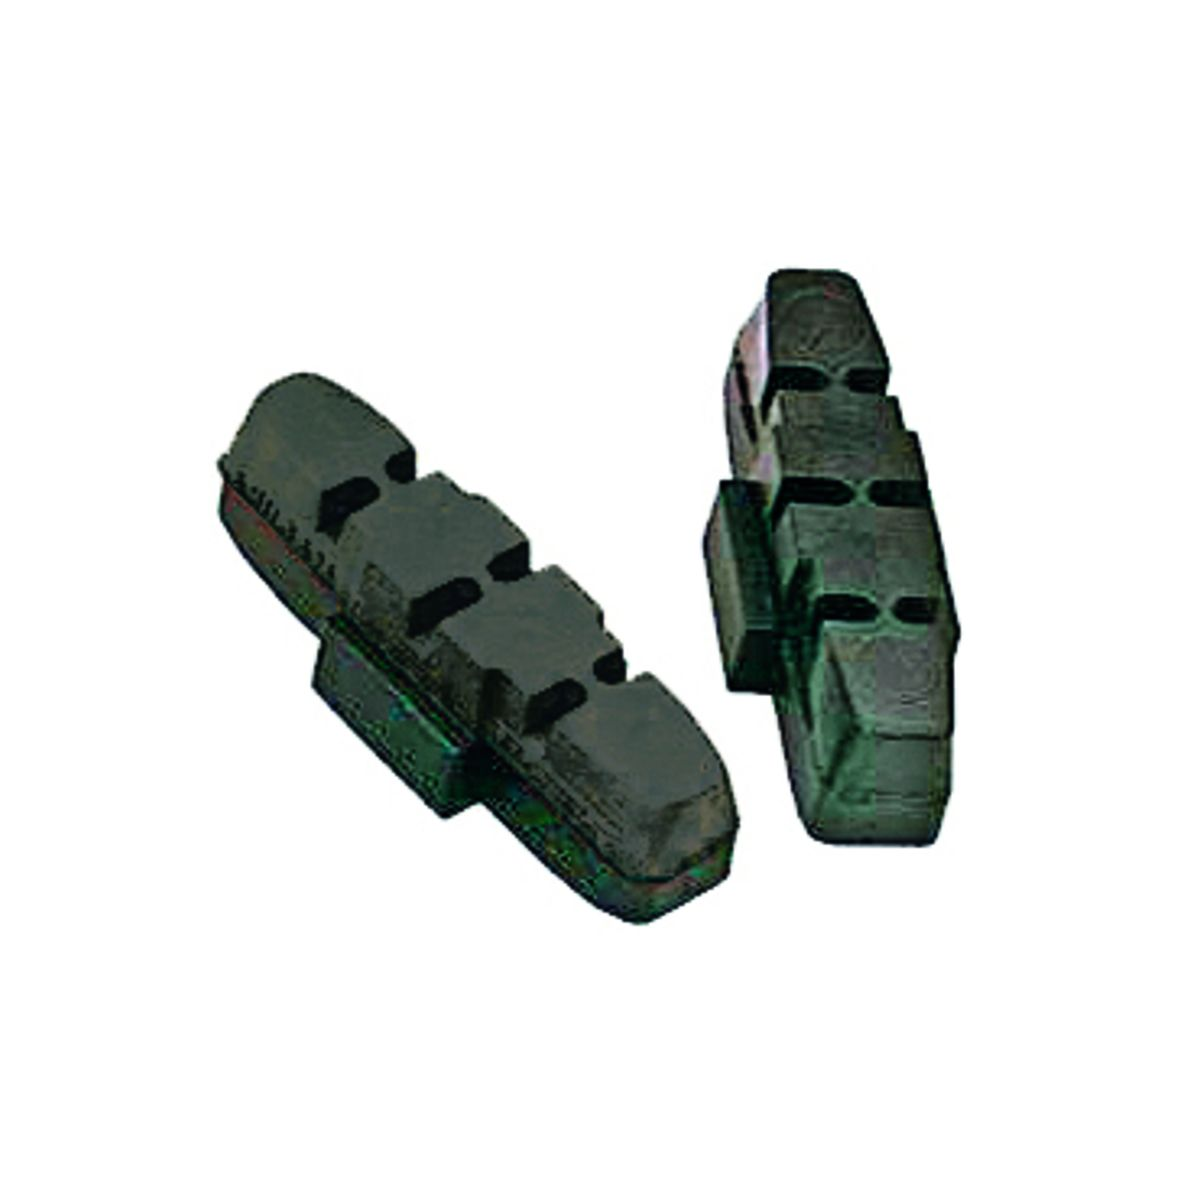 Brake pads for aluminium rims for HS brakes